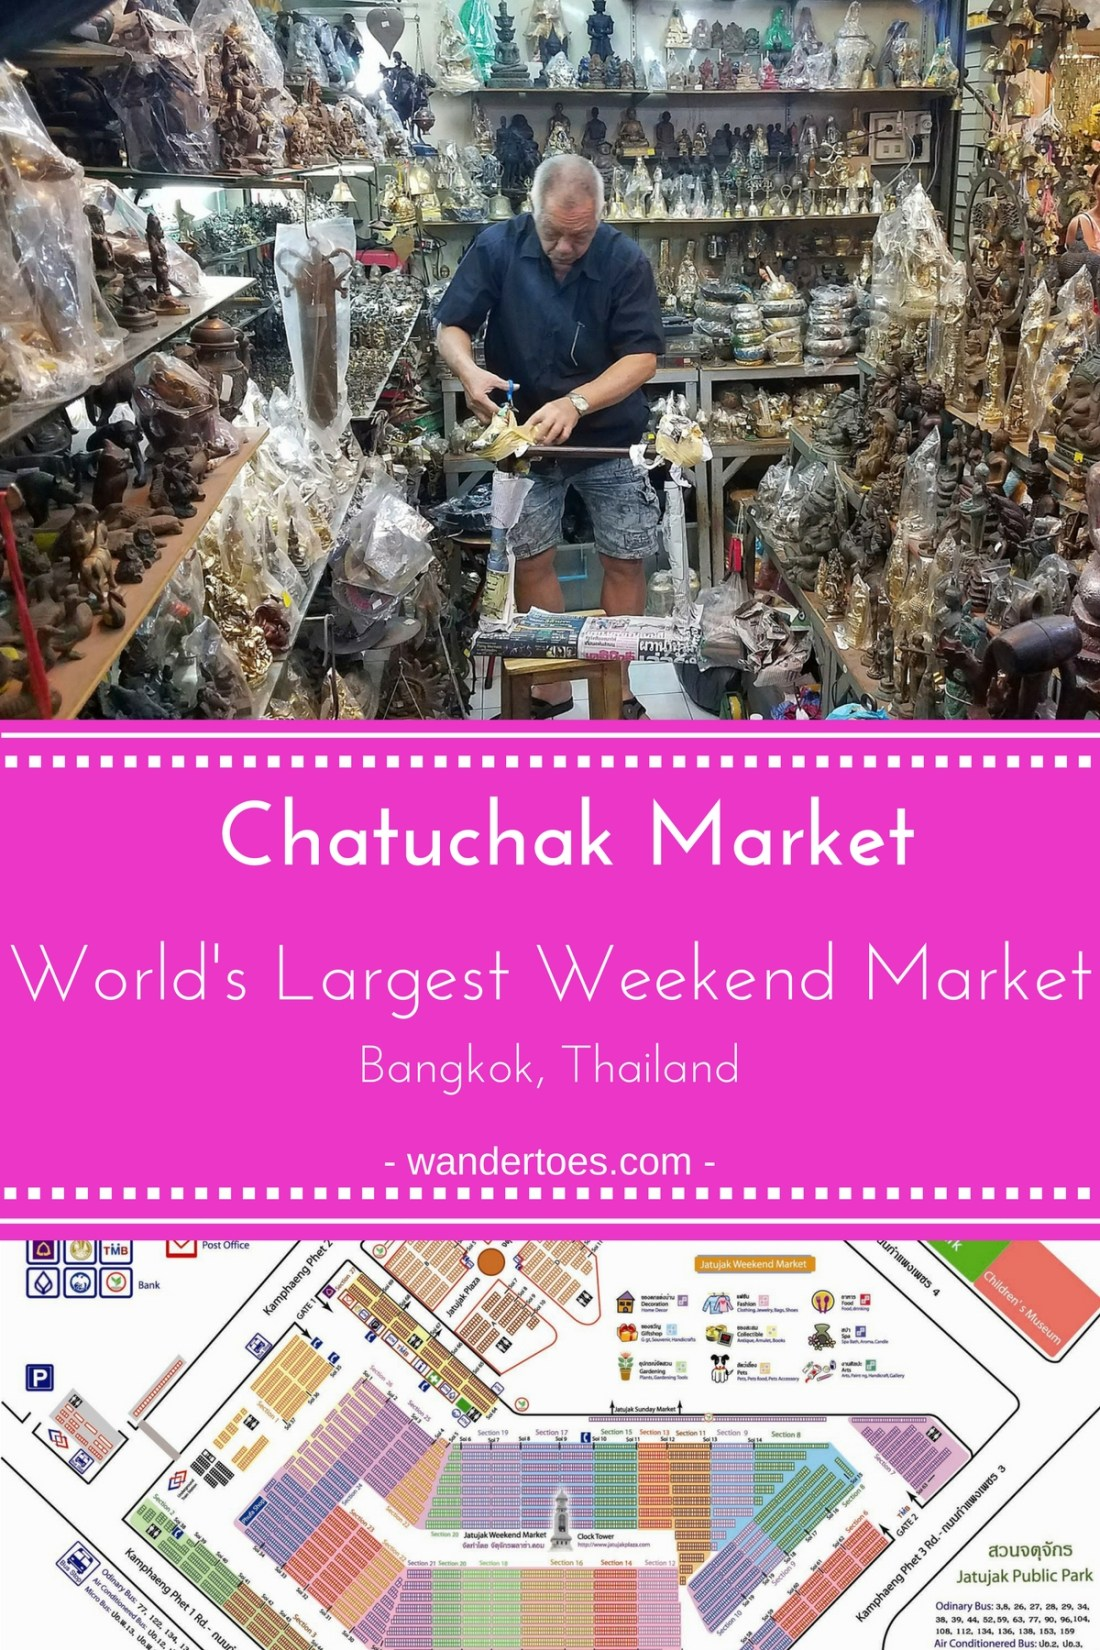 Bangkok, Thailand: Chatuchak Market is the Largest Weekend Market in the World - and completely deserves the title! Visit for that hard to find Bangkok Souvenir, to decorate your home, or get anything else you might be looking for. | Chatuchak Market | Chatuchak Map | Bangkok Market | World's Largest Market | Bangkok Souvenirs | #ChatuchakMarket #ChatuchakMap #BangkokMarket #LargestMarket #Bangkoksouvenirs